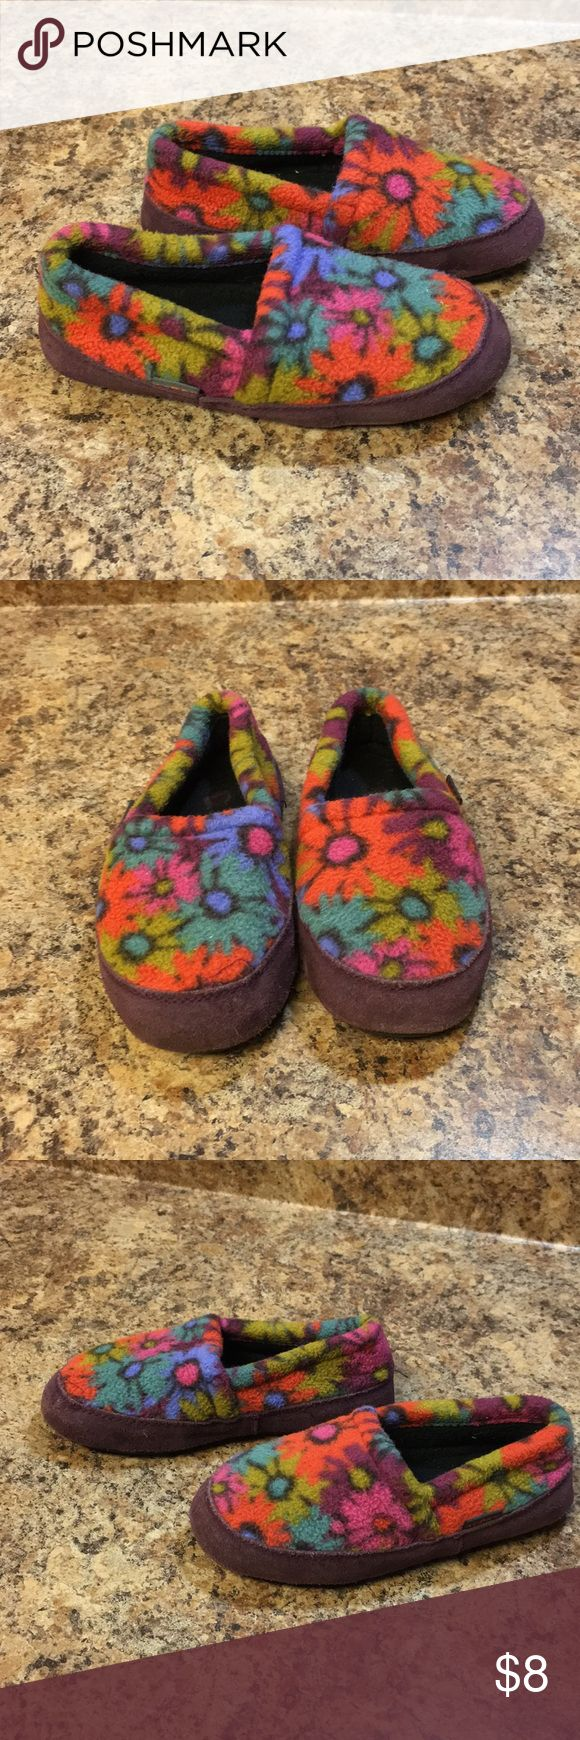 Acorn Slippers Multi colored floral print slippers. Good condition. Size 12.5-13.5 Acorn Shoes Slippers